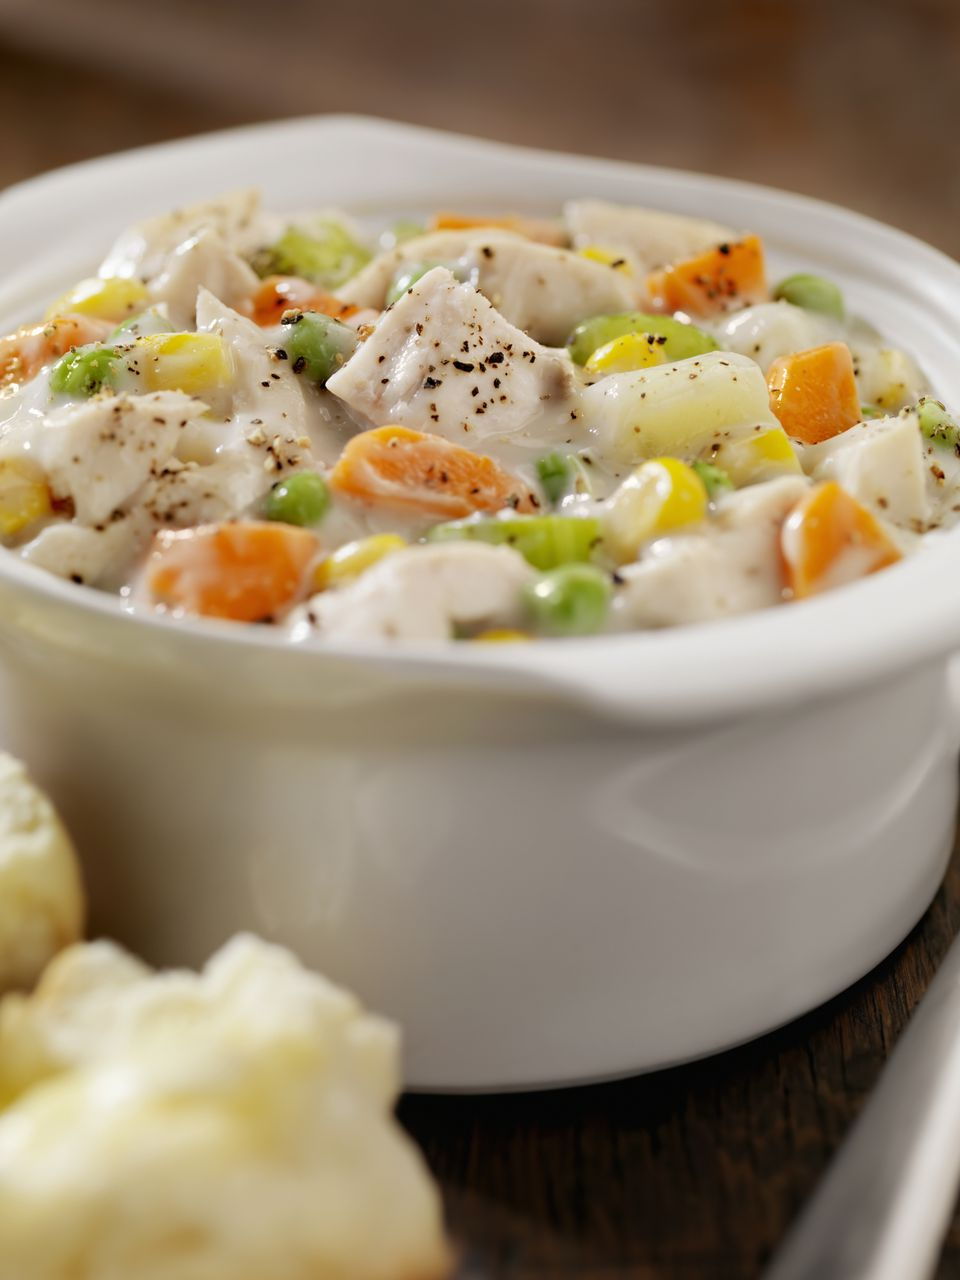 Low-fat cream of chicken soup